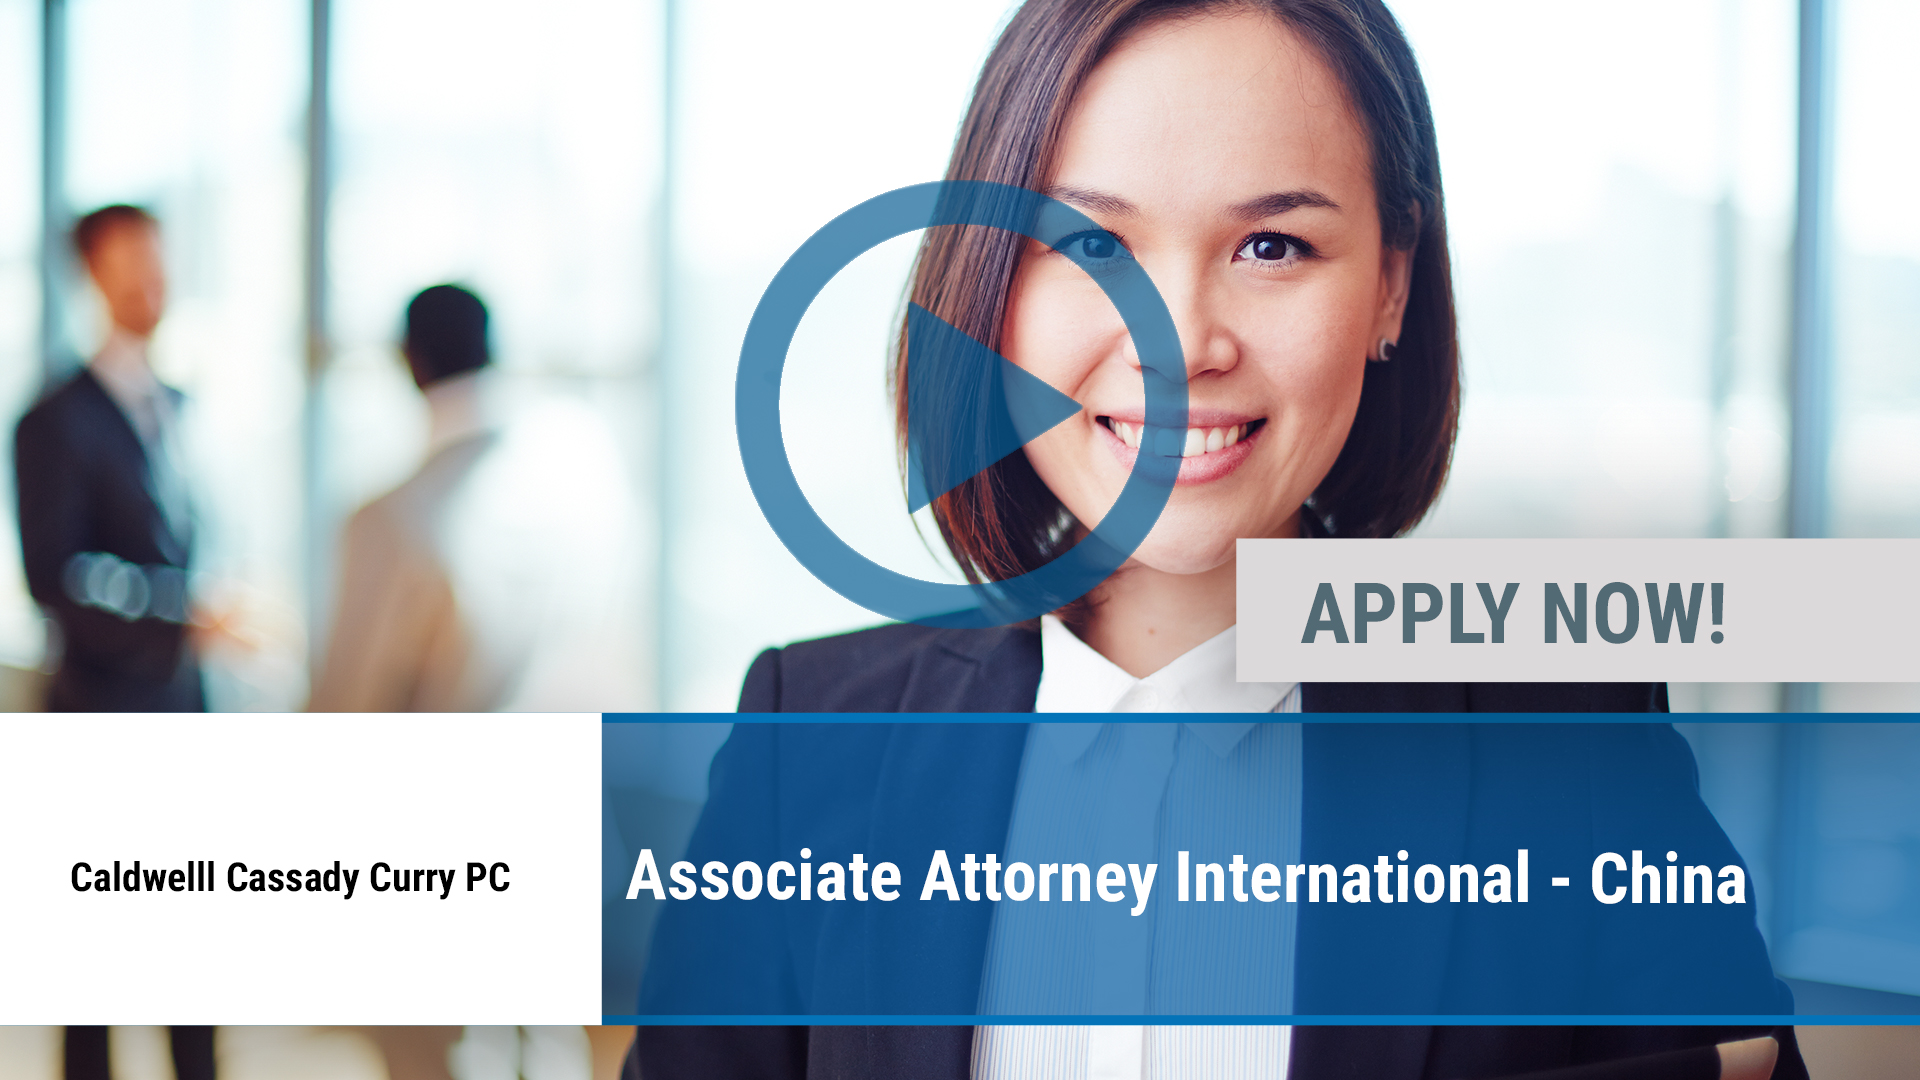 Watch our careers video for available job opening Associate Attorney International - China in Dallas, TX